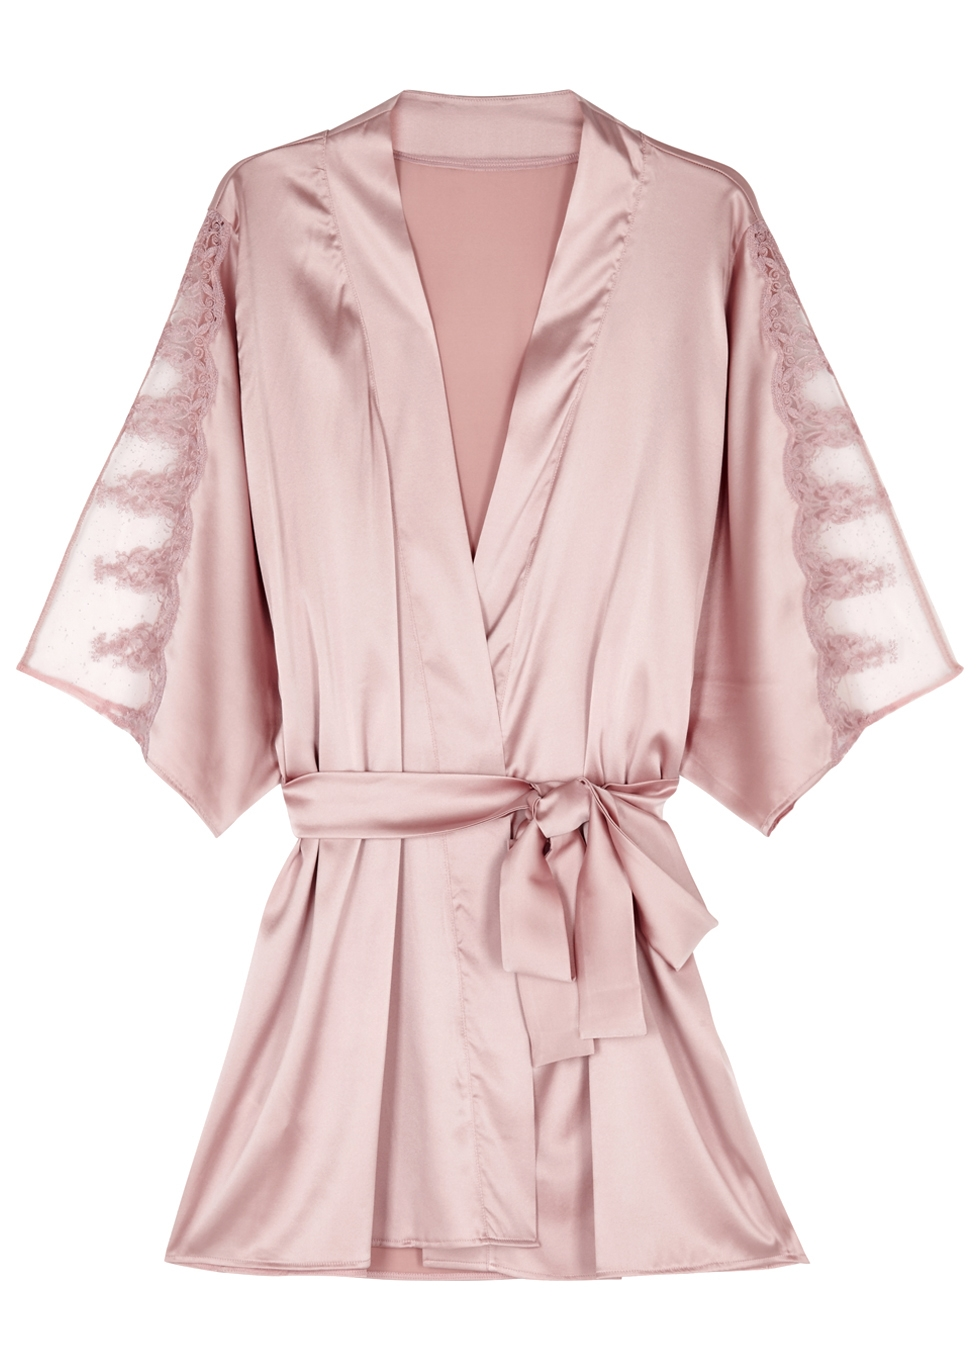 FLEUR OF ENGLAND ANTOINETTE BLUSH SILK-BLEND ROBE